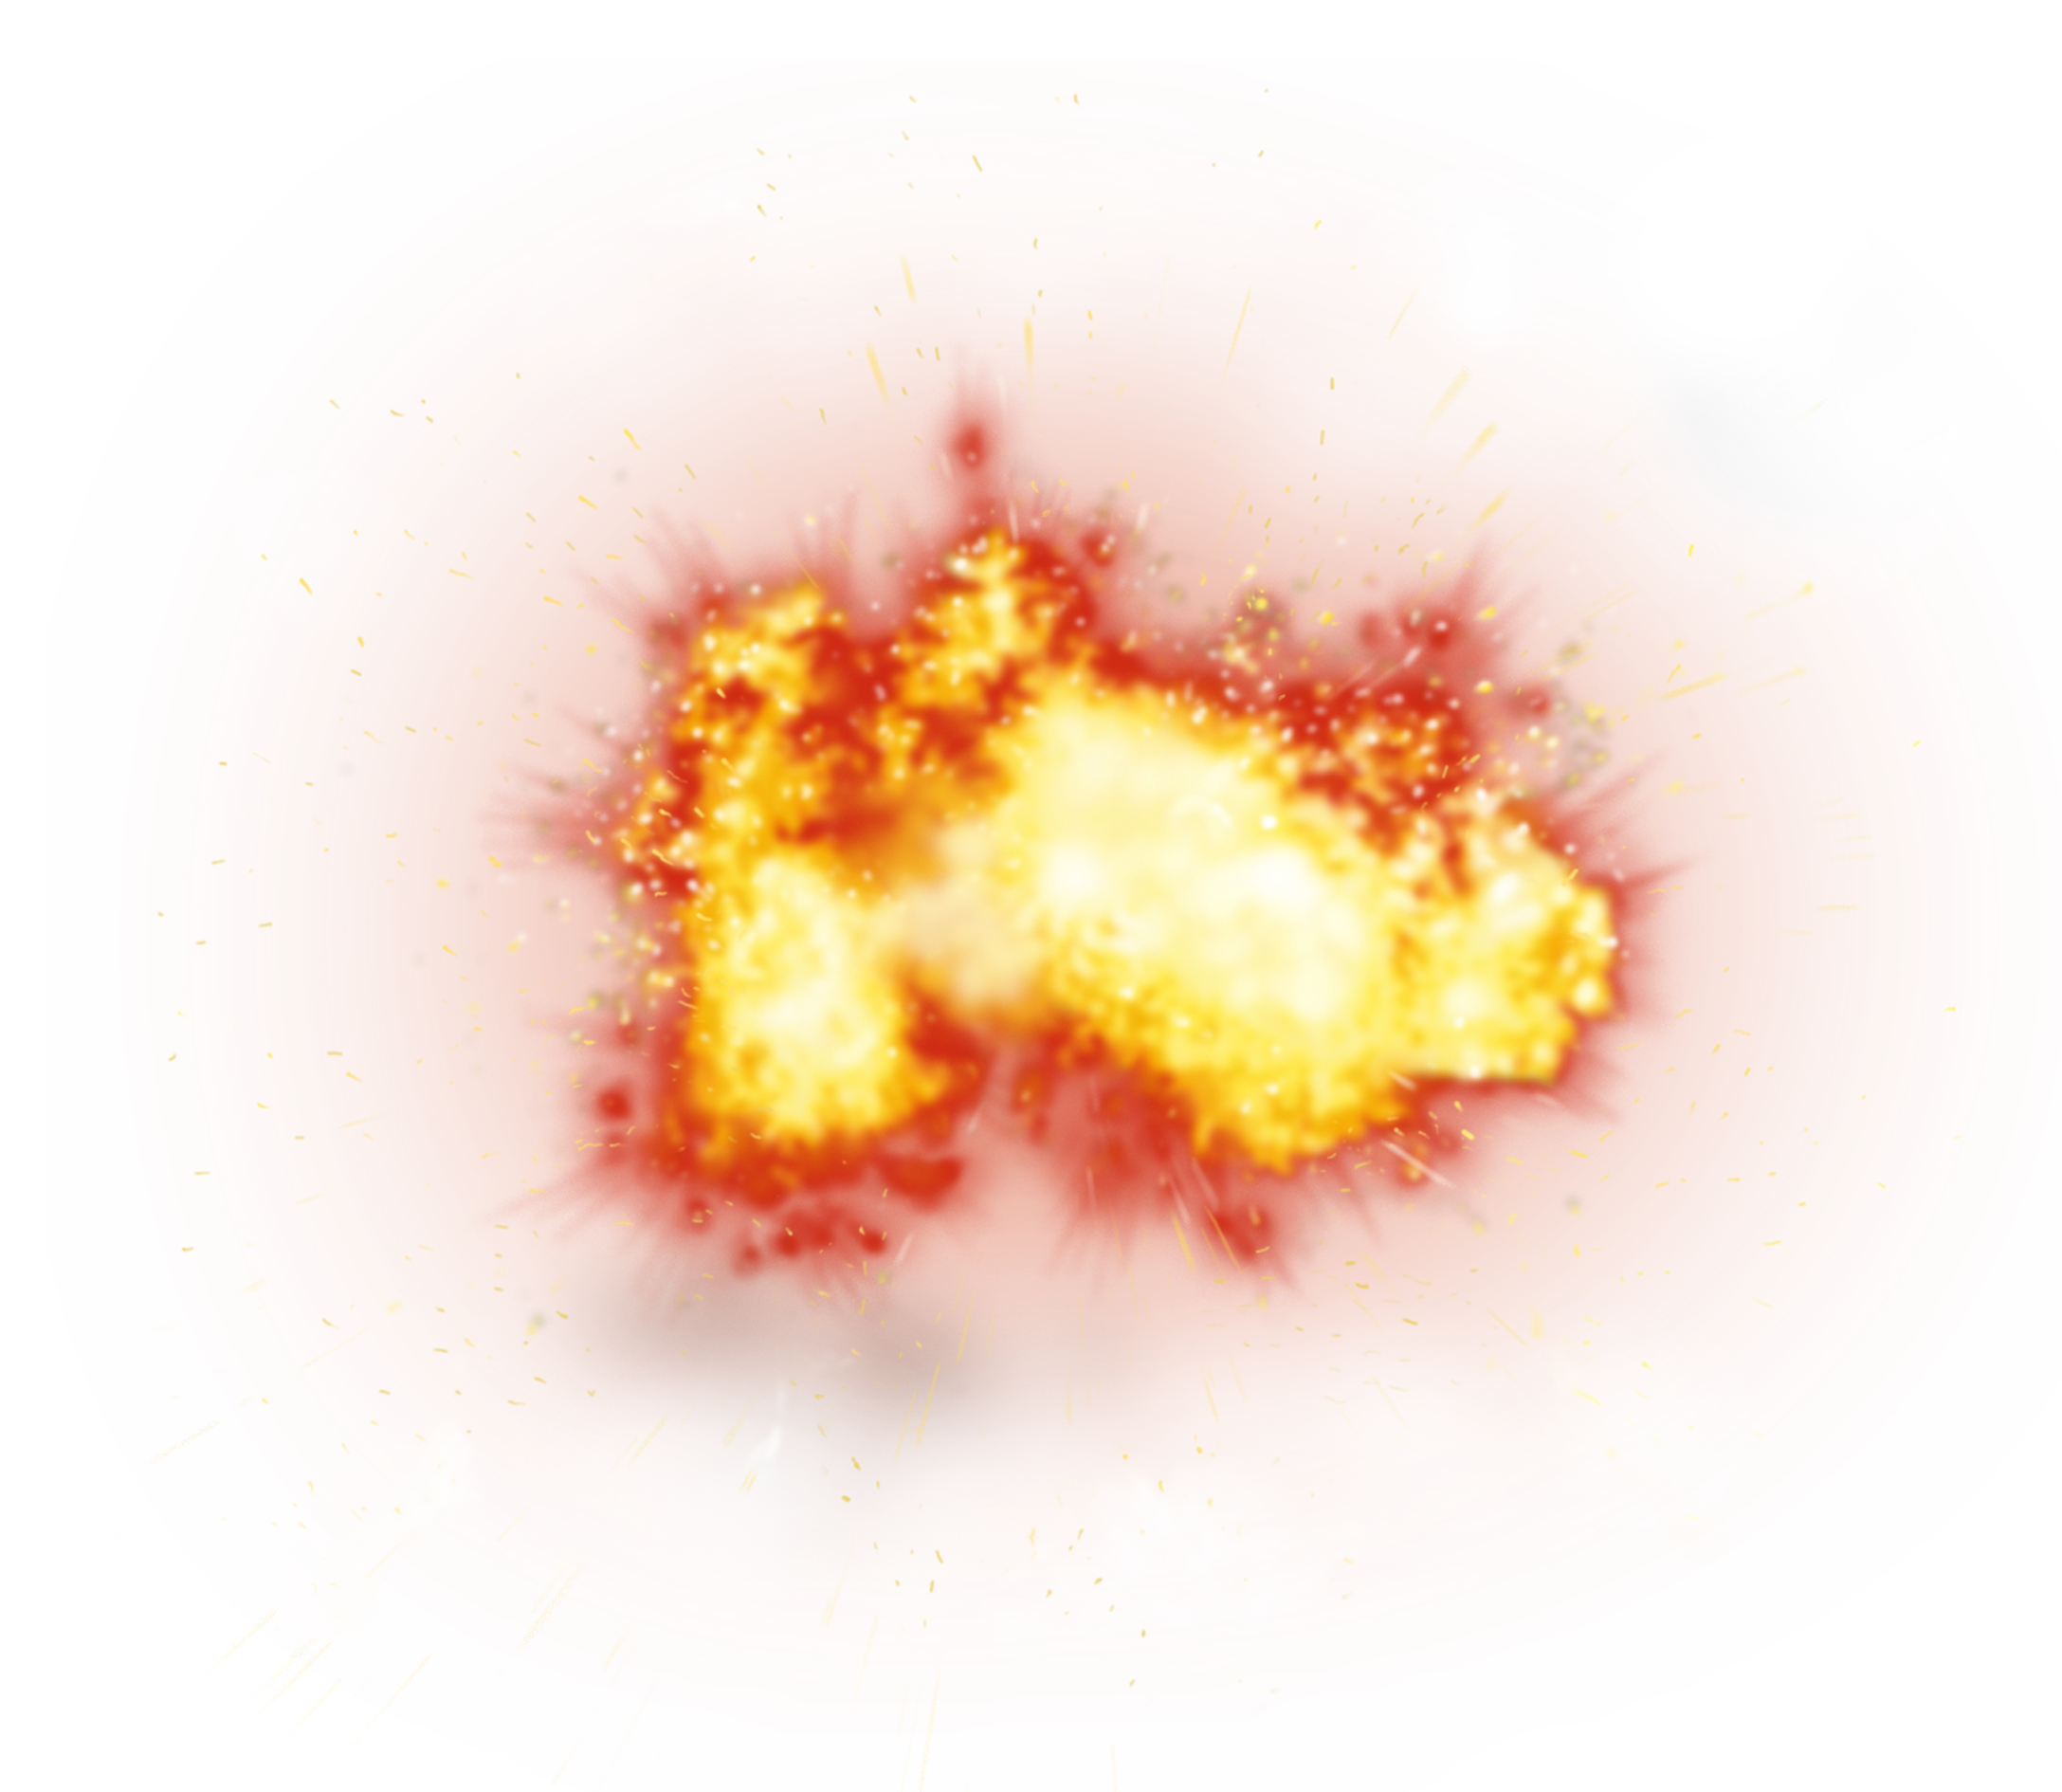 transparent explosions ground